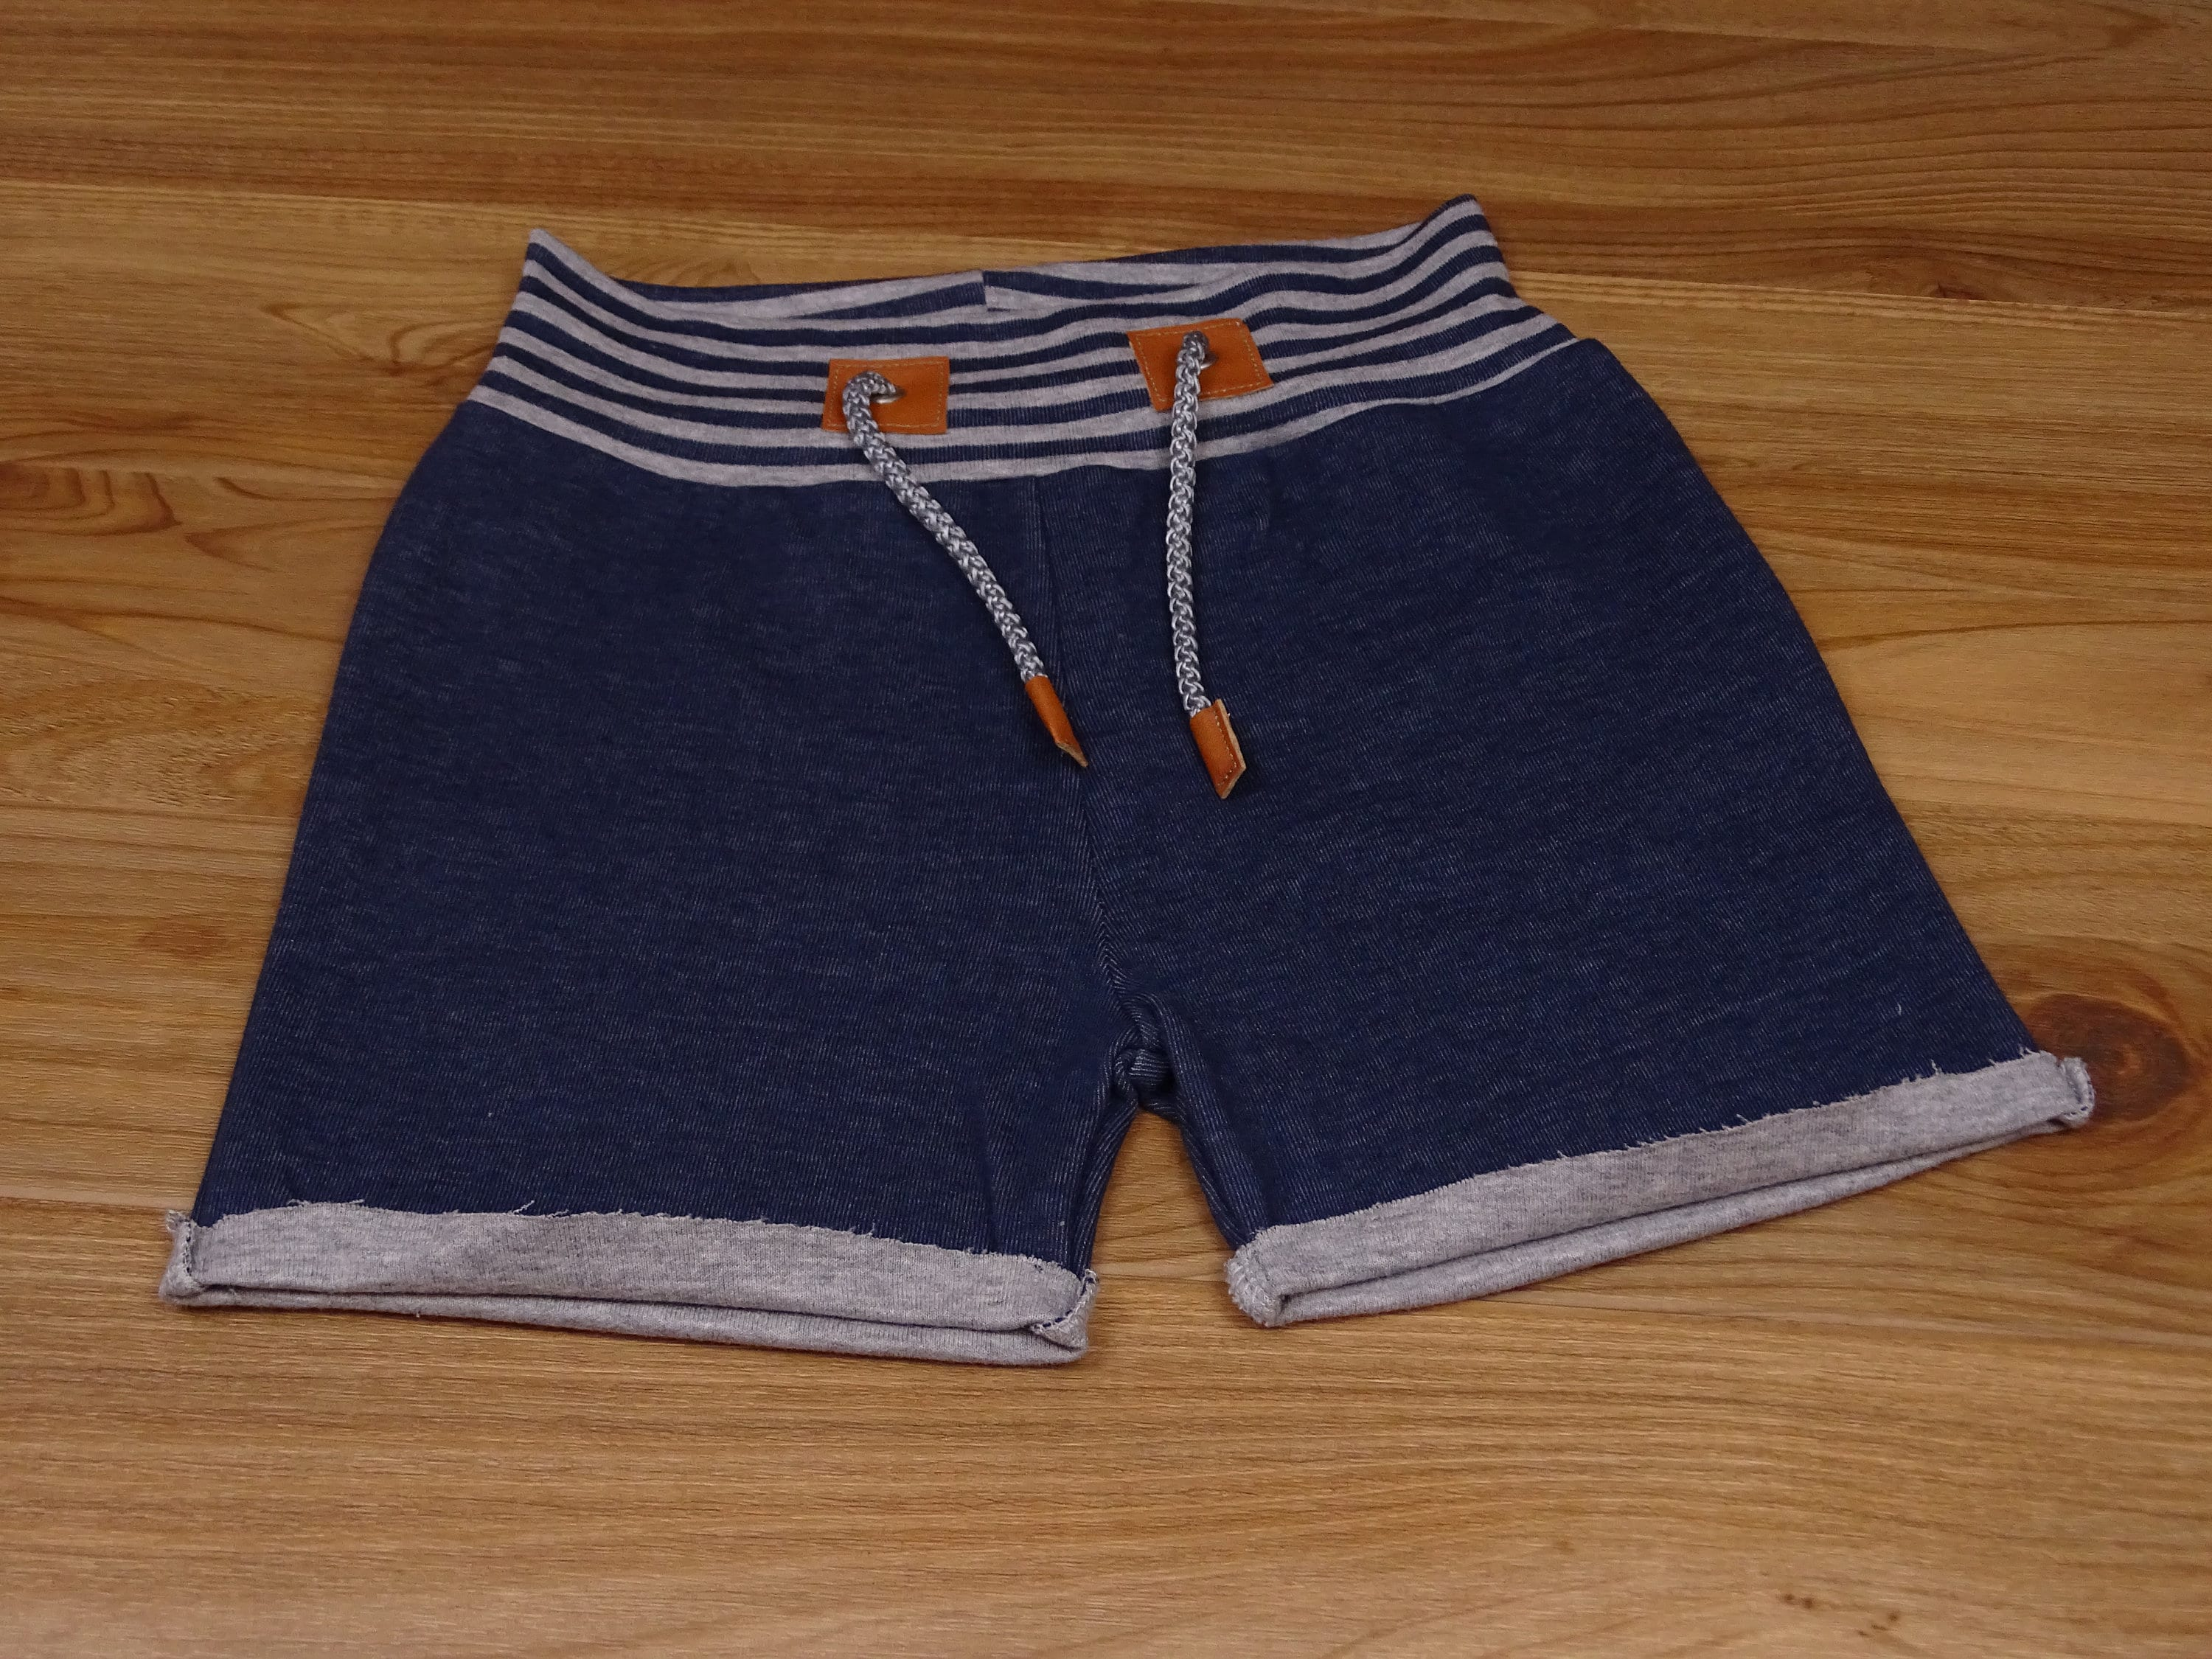 Shorty shorts Trousers Blue grey stripes 128/134